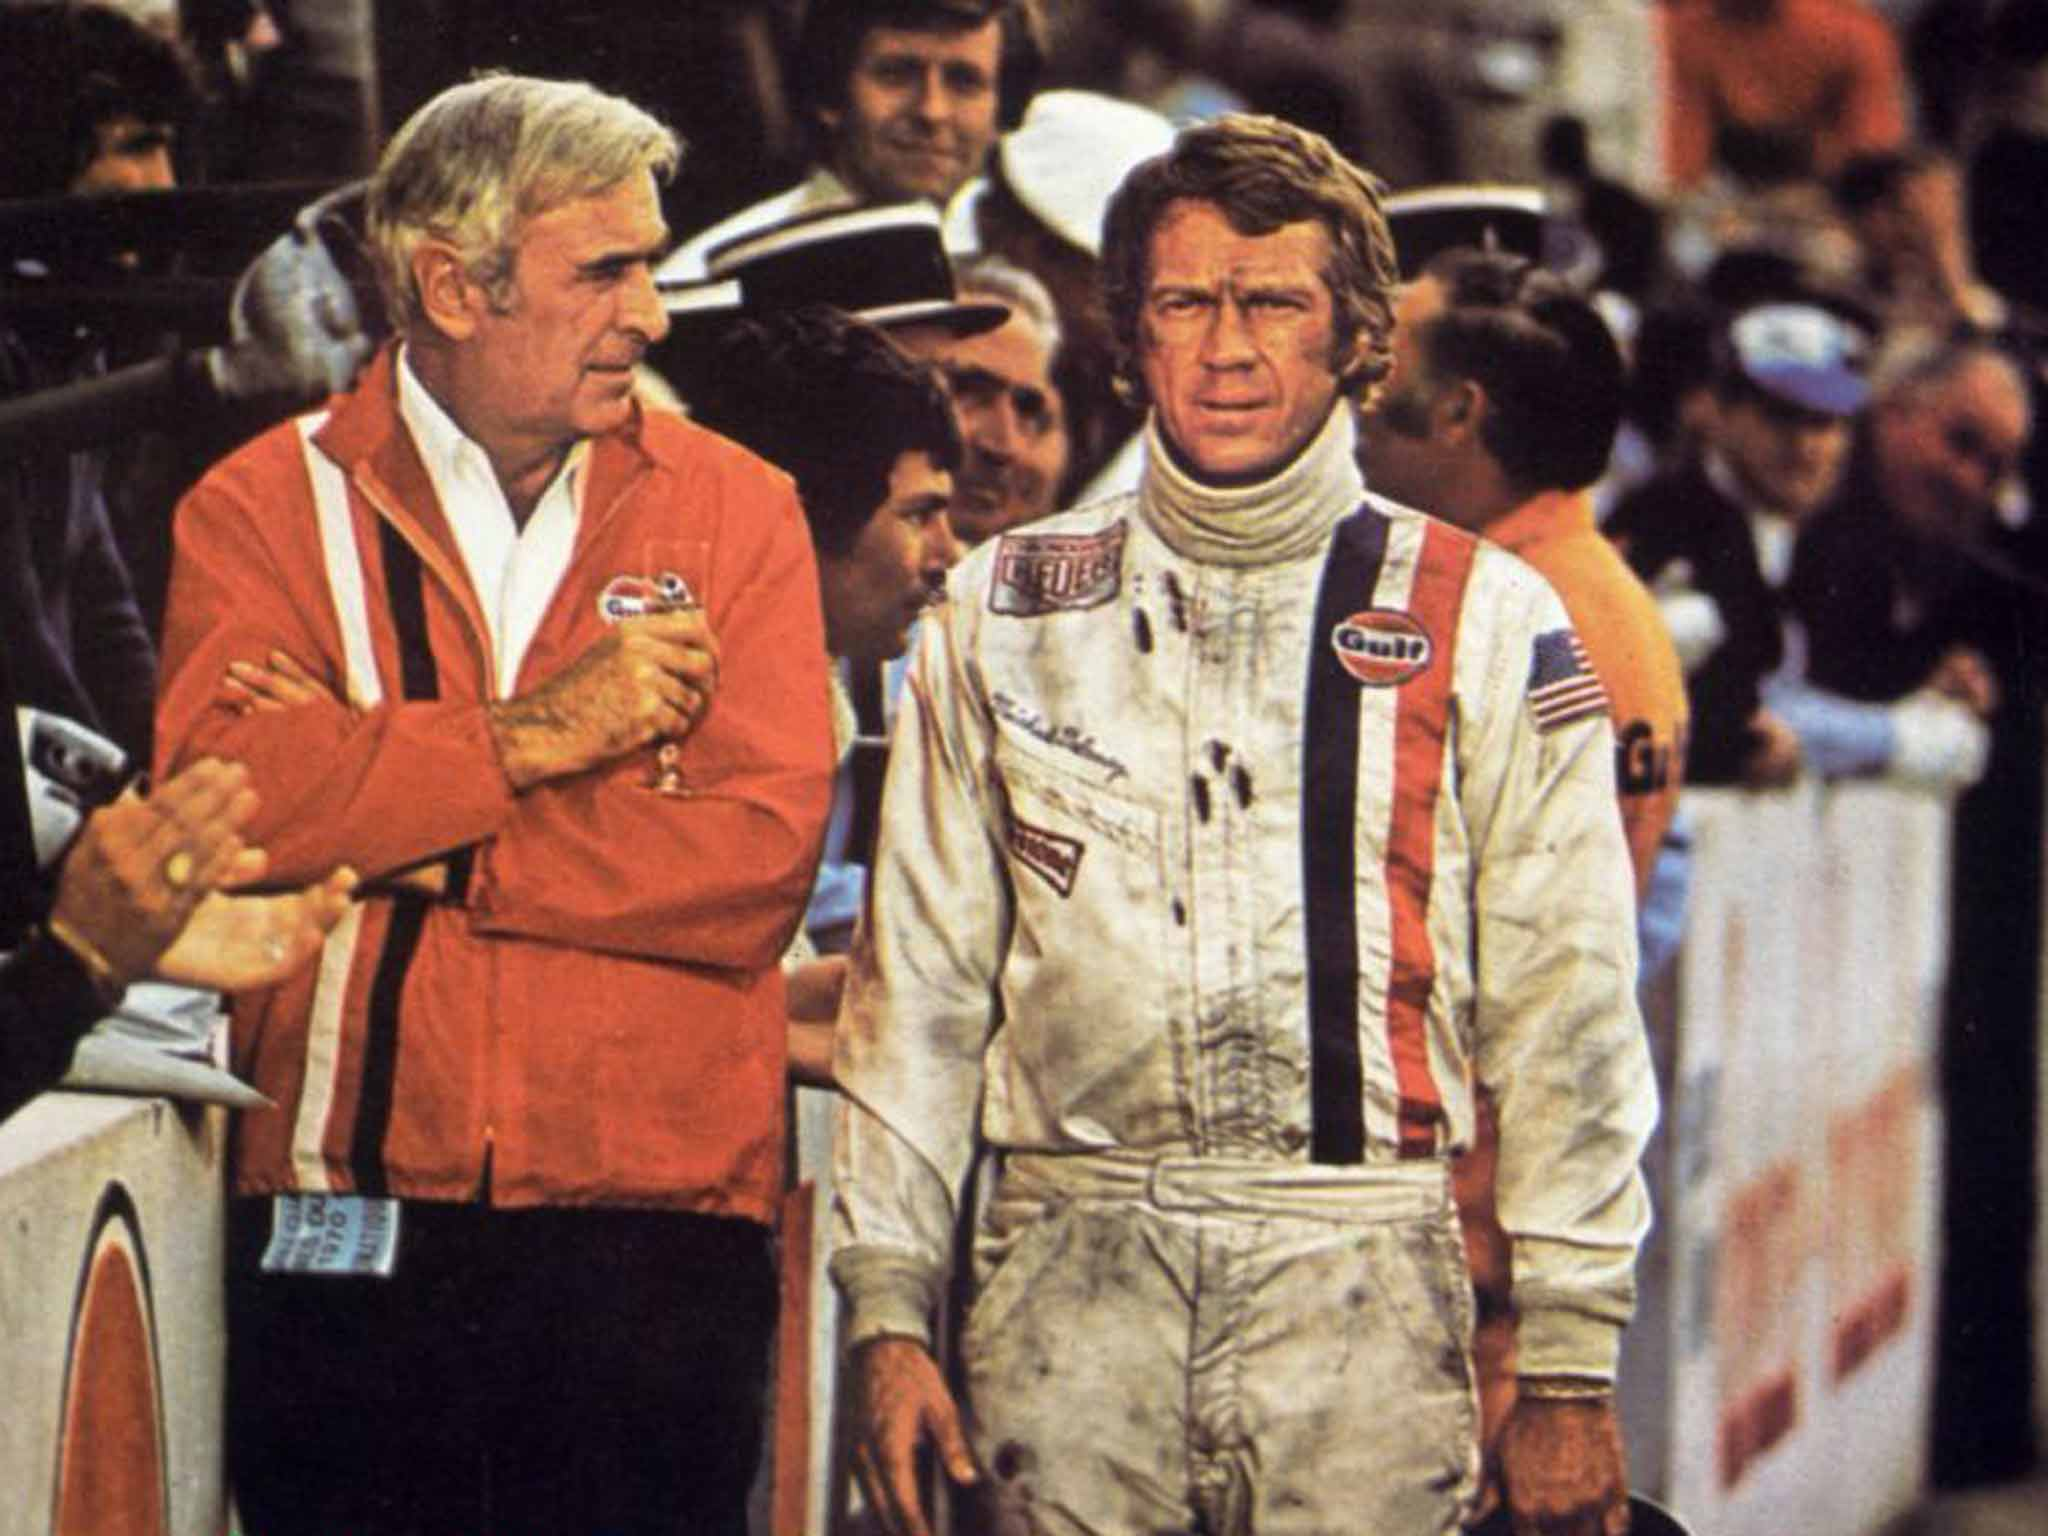 steve mcqueen 39 s 39 le mans 39 project new film features remarkable unseen footage and outtakes. Black Bedroom Furniture Sets. Home Design Ideas